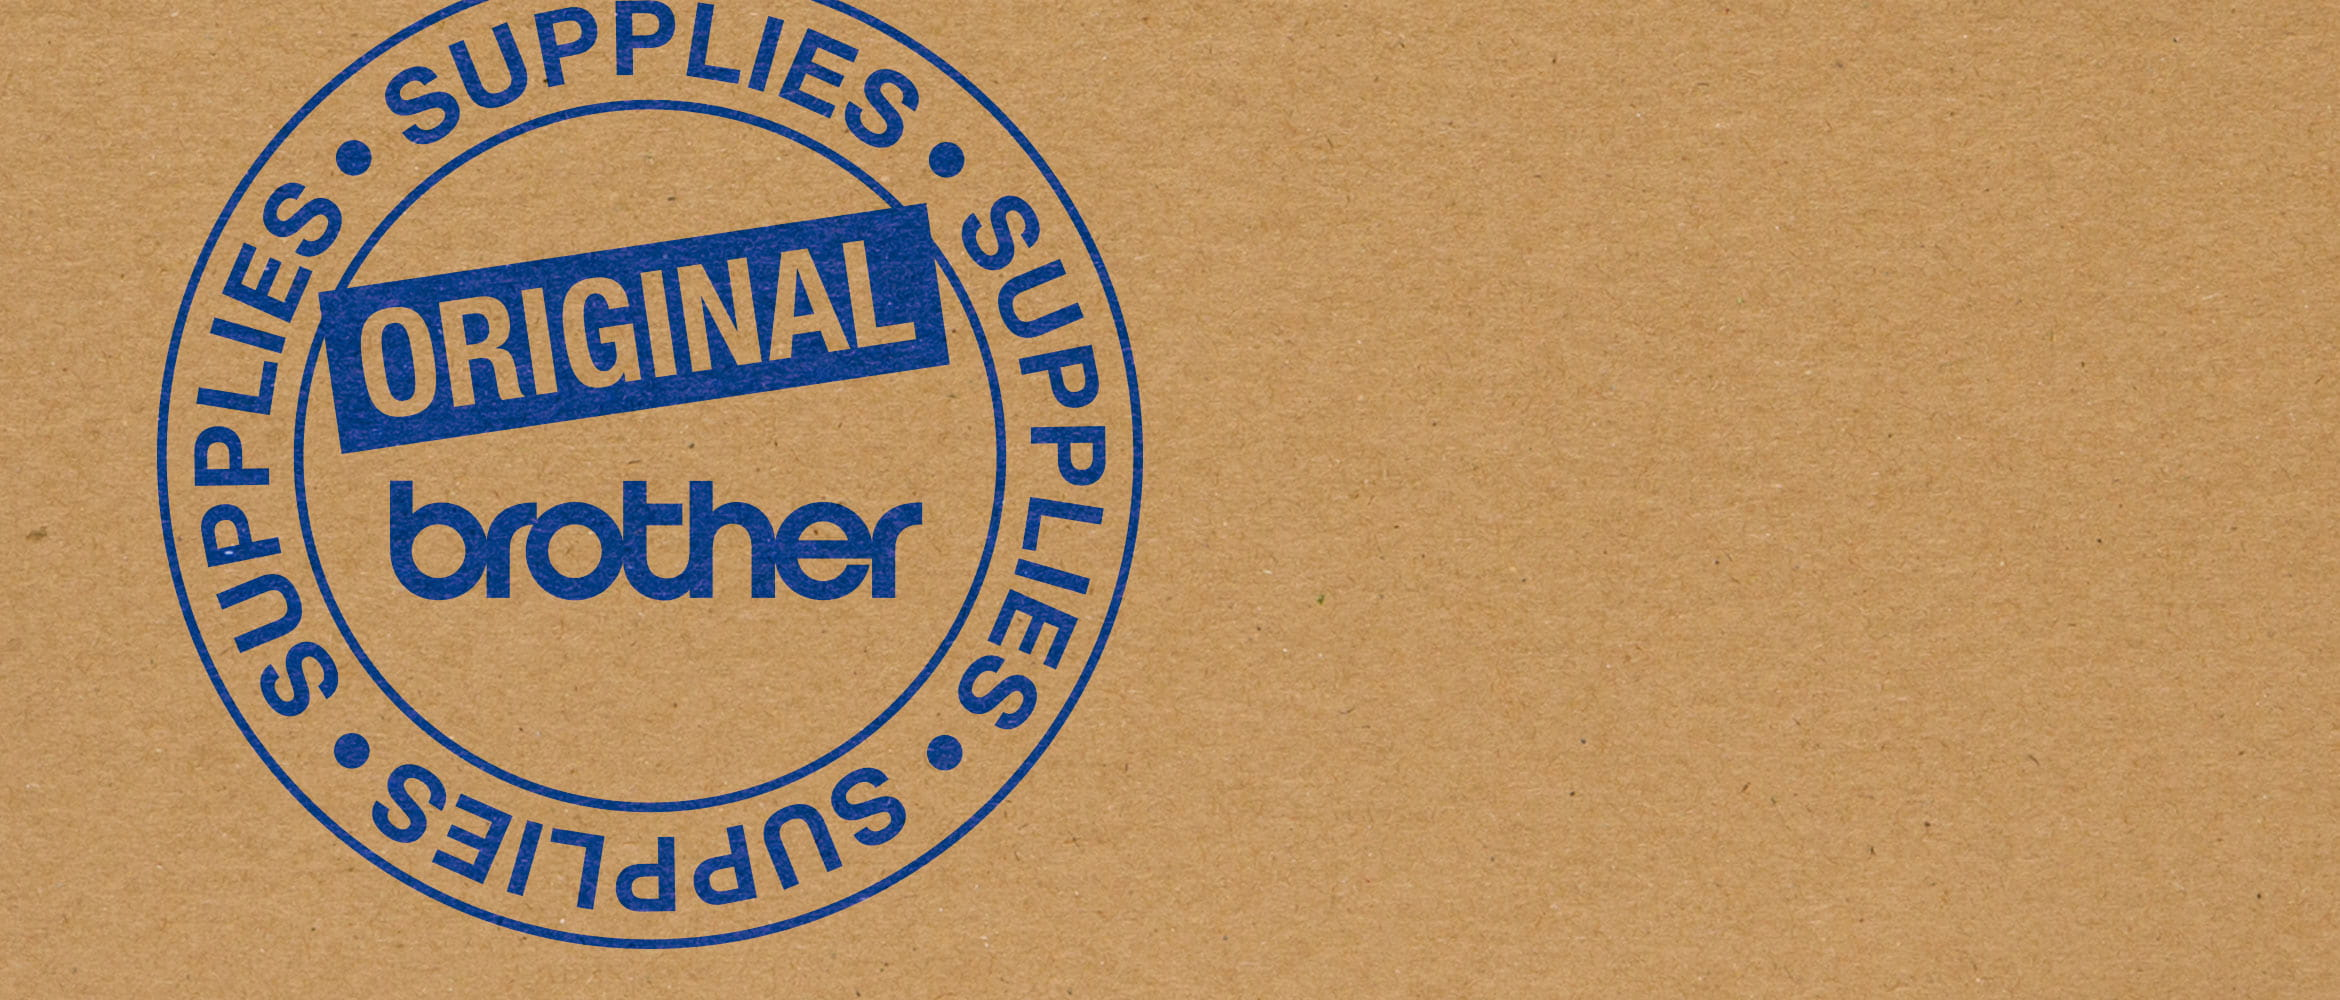 Hallmark stamp certifying a Brother original product